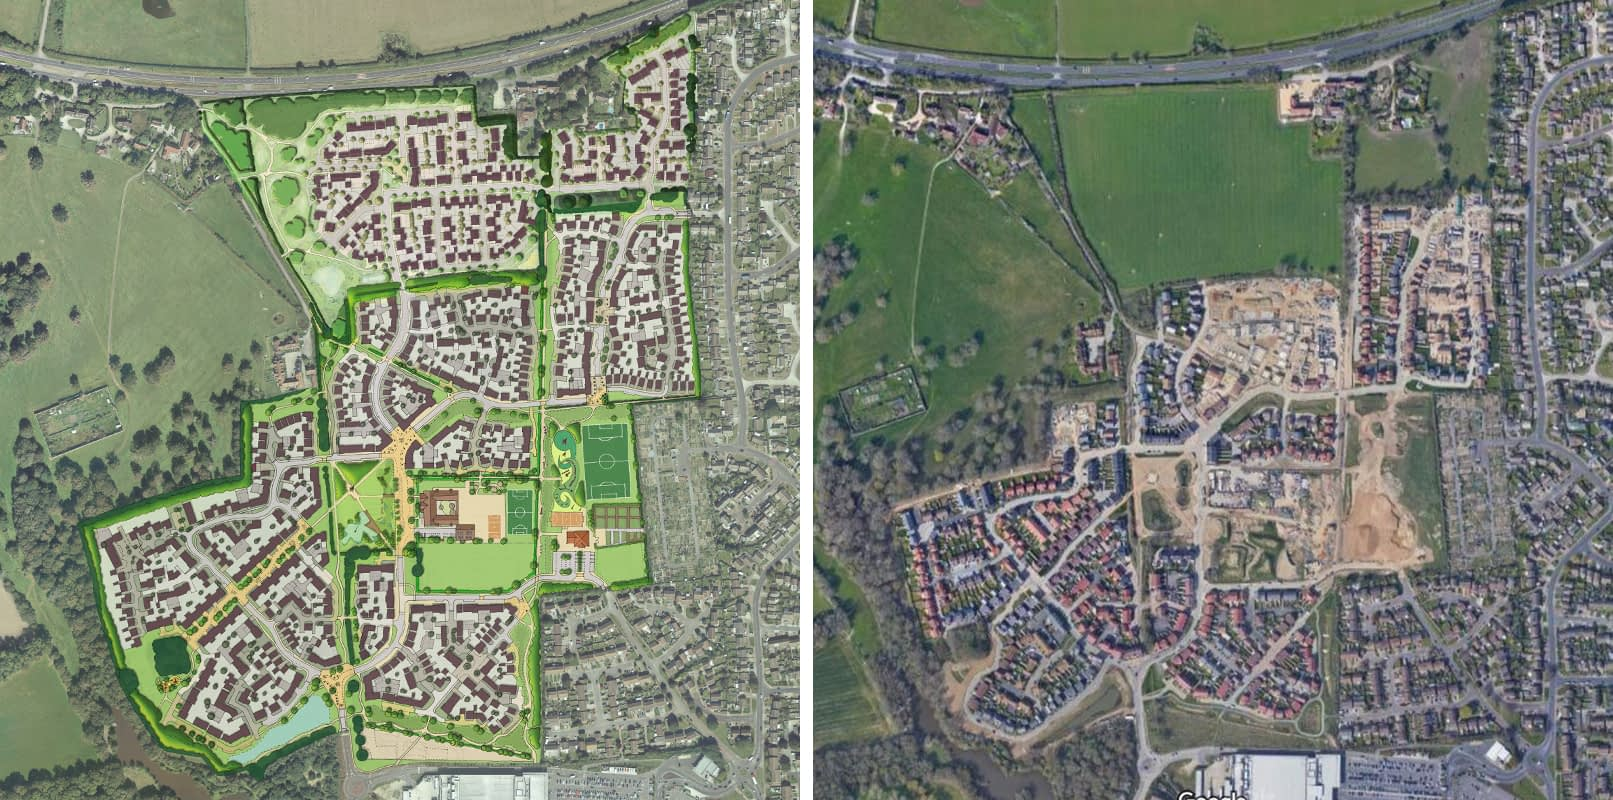 West Durrington masterplan